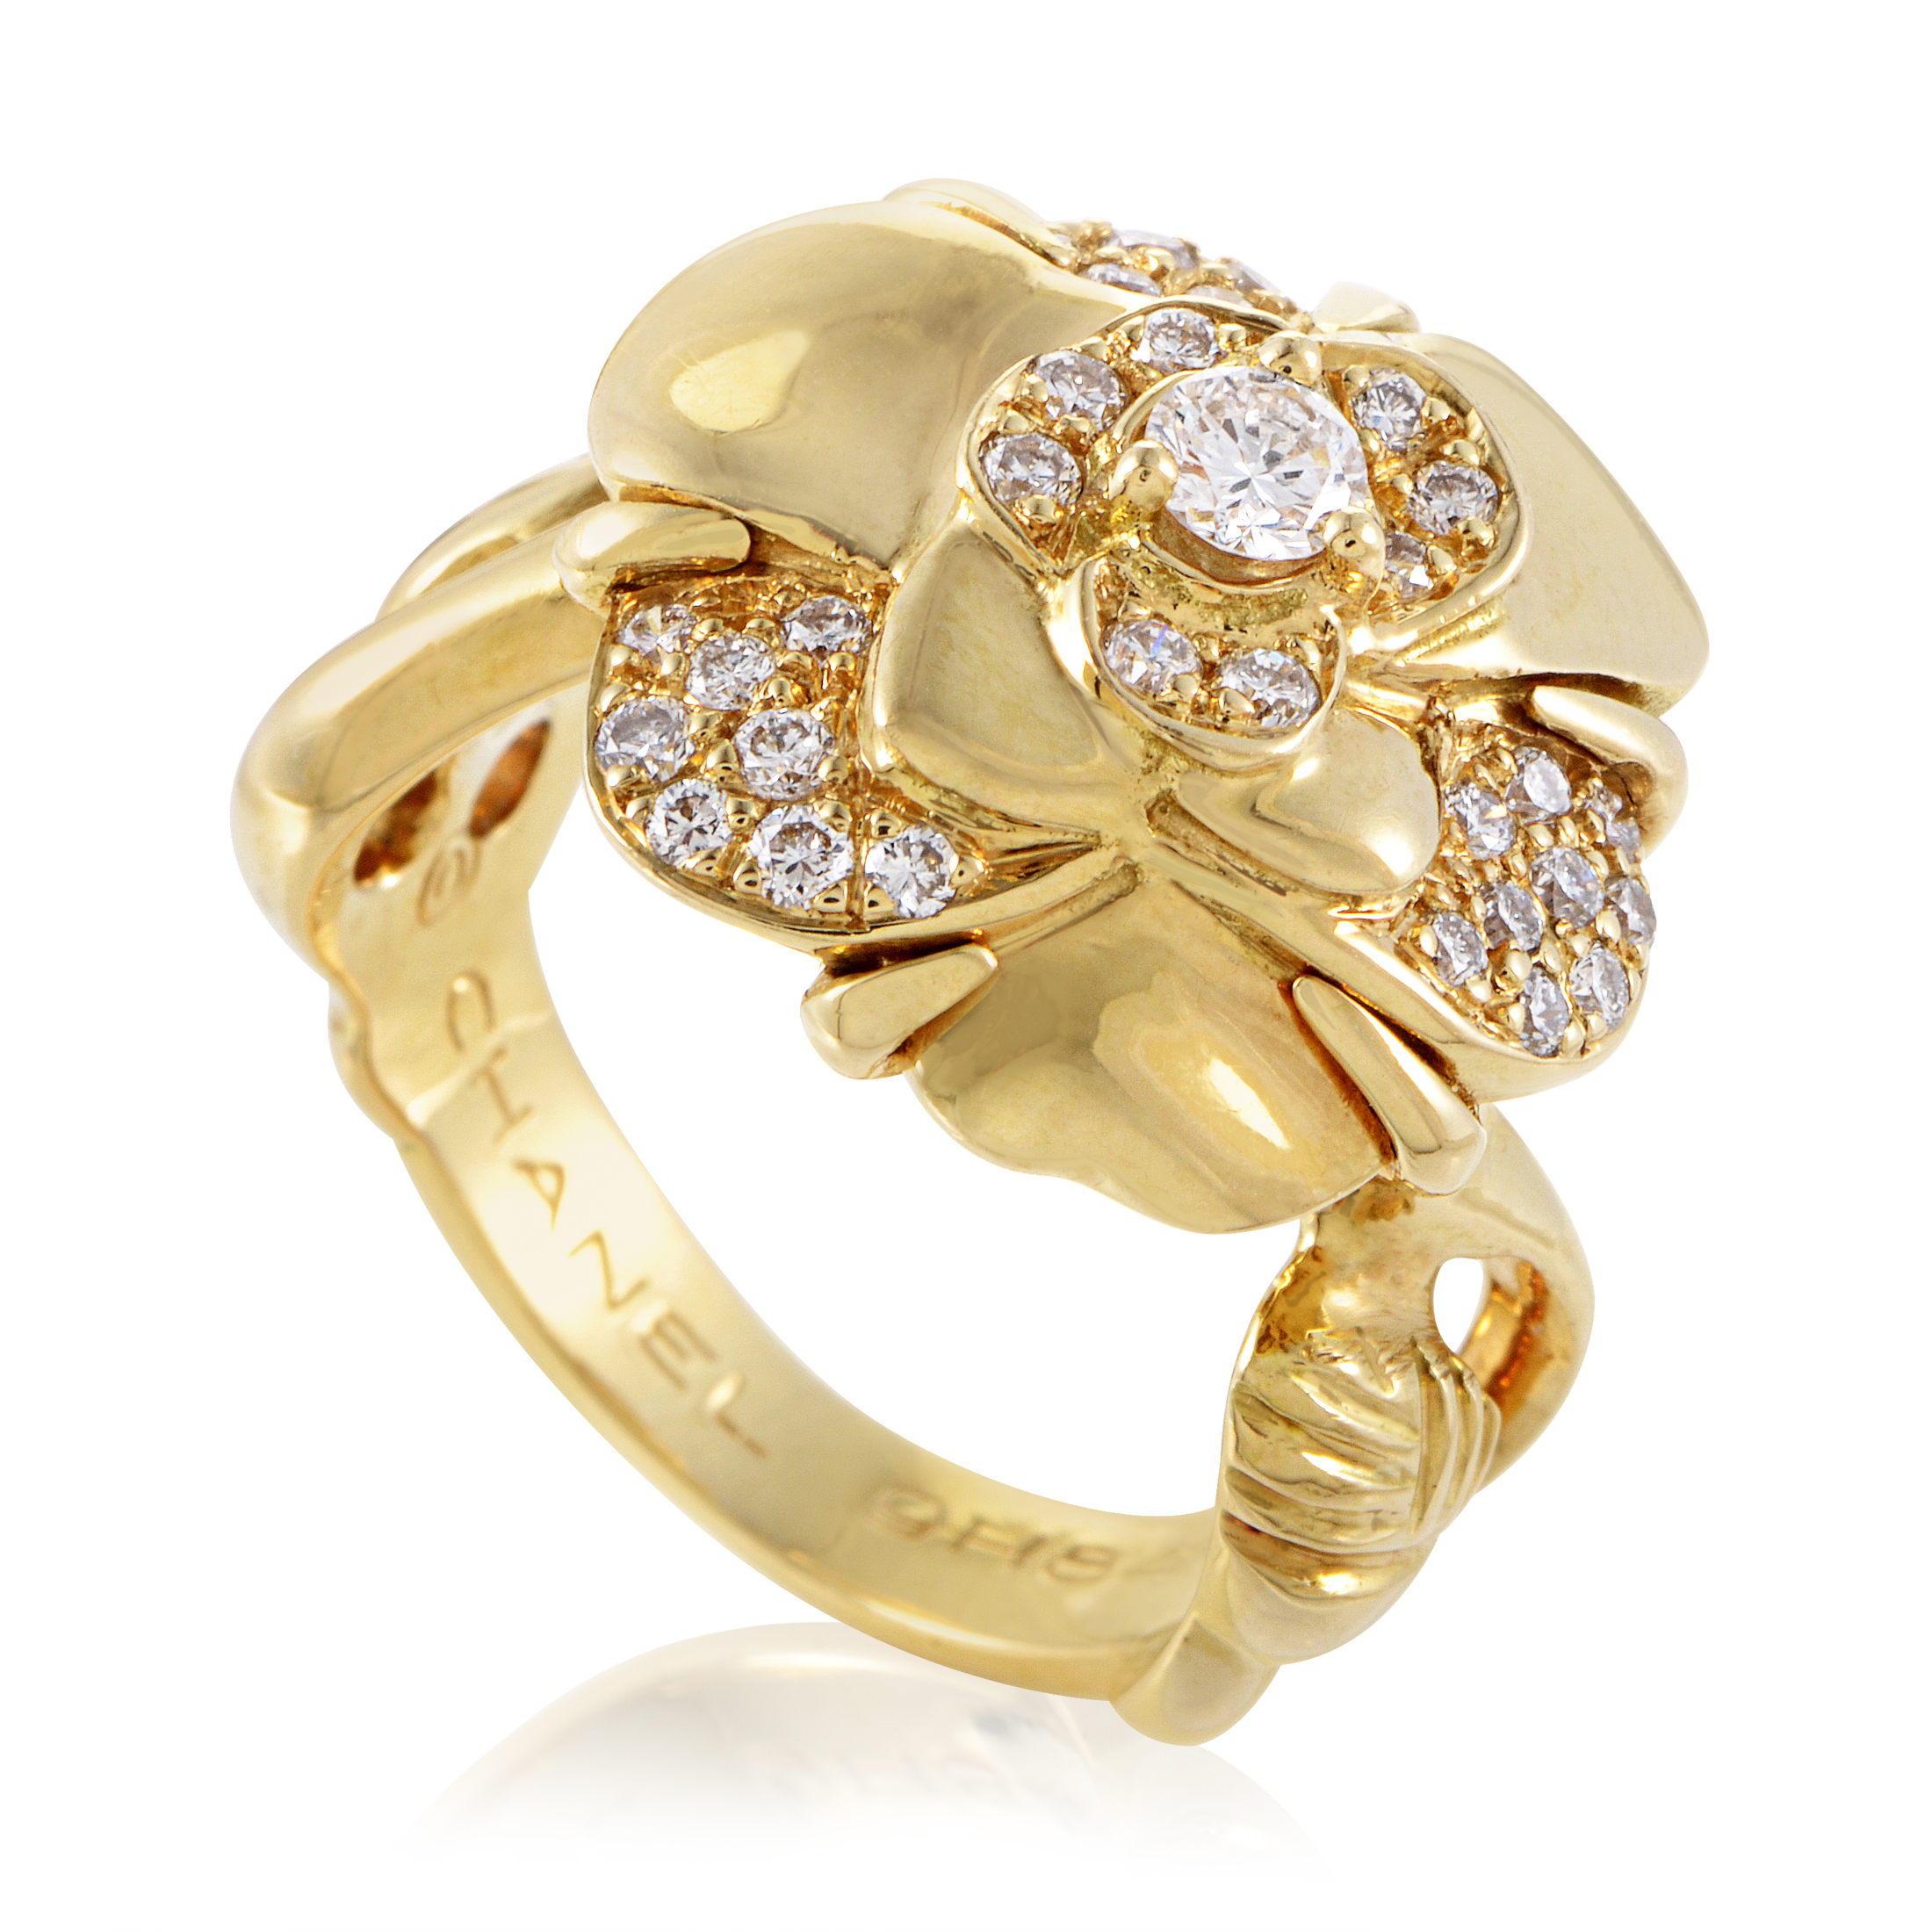 Chanel Camelia Women's 18K Yellow Gold Diamond Flower Ring